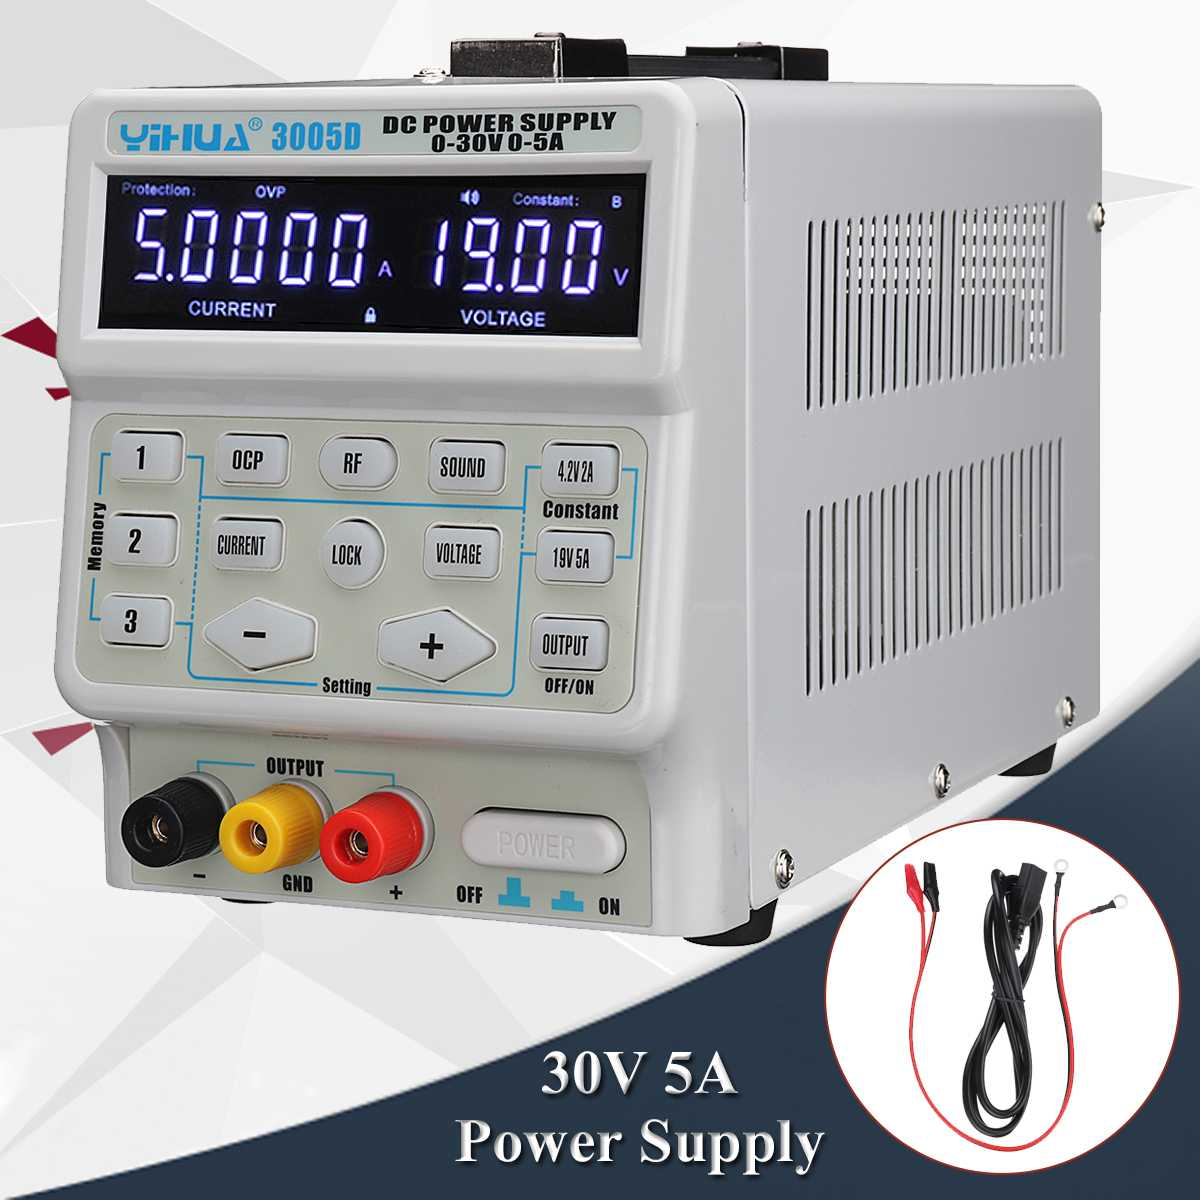 30V 5A Digital DC Switch Power Supply Professional 110V 220V Accurate Variable Dual Digital Adjustable DC